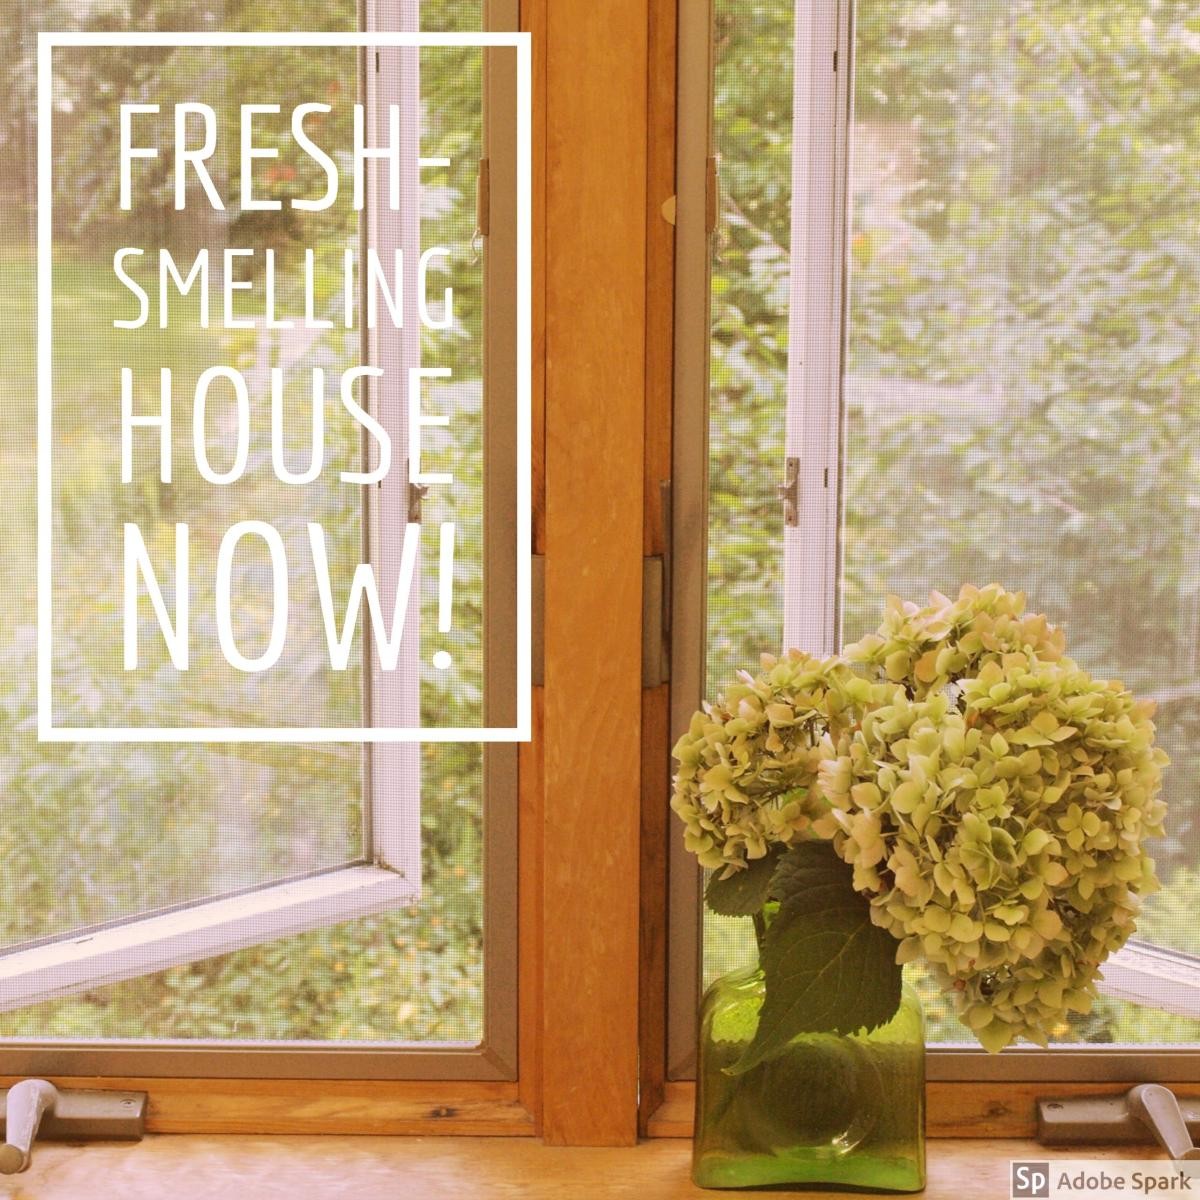 12 ways to make your home smell fabulous dengarden for What makes house smell good